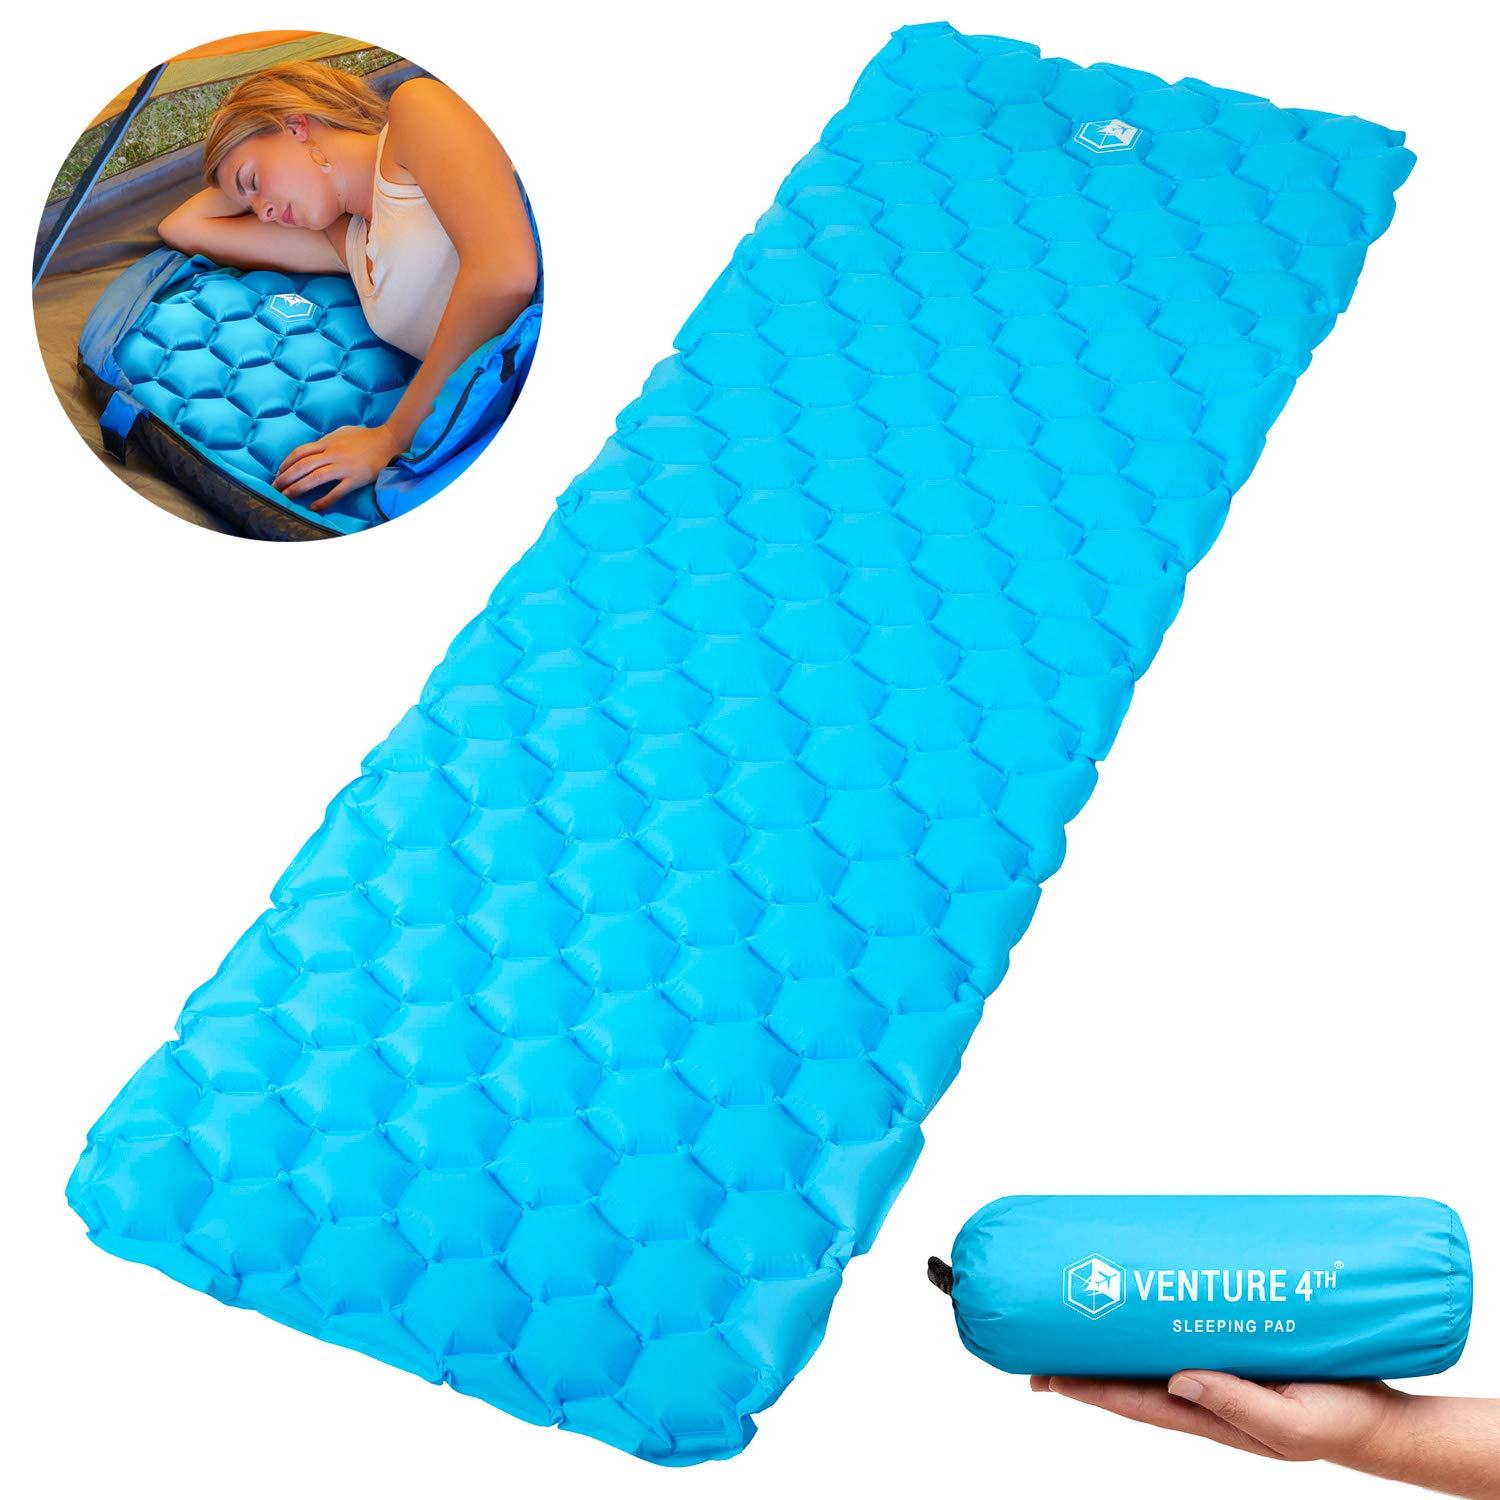 VENTURE 4TH Ultralight Air Sleeping Pad - Lightweight, Compact, Durable - Air Cell Technology for Added Stability and Comfort While Backpacking, Camping, and Traveling (Light Blue) by VENTURE 4TH